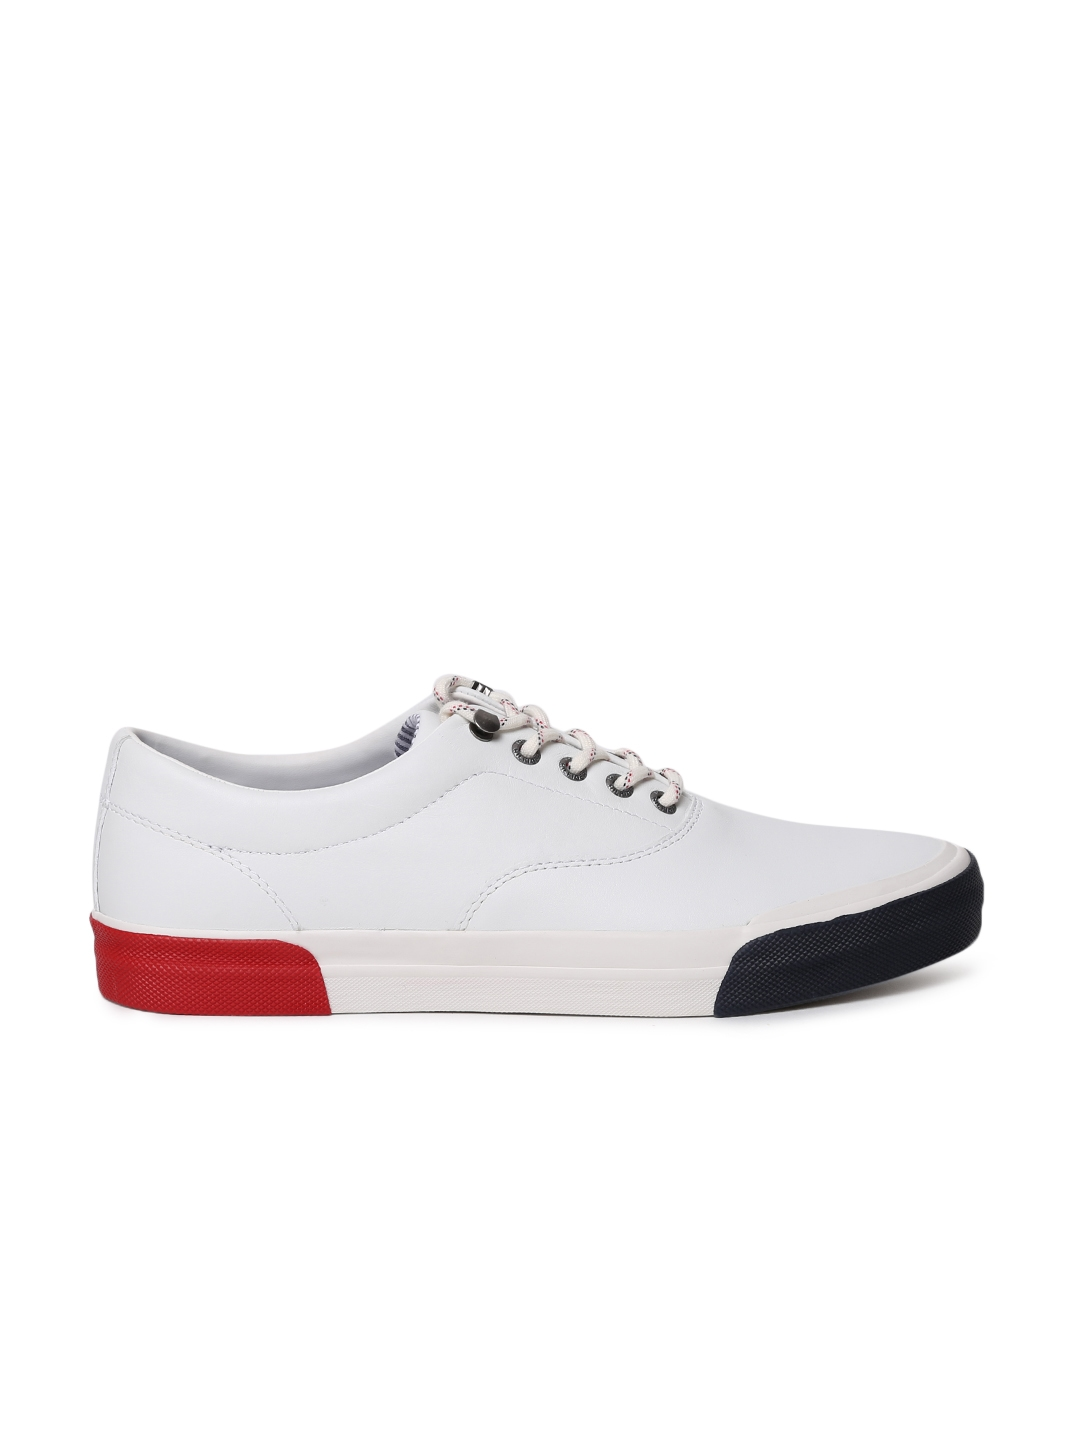 b6b436f36 Buy Tommy Hilfiger Men White Sneakers - Casual Shoes for Men 2003073 ...